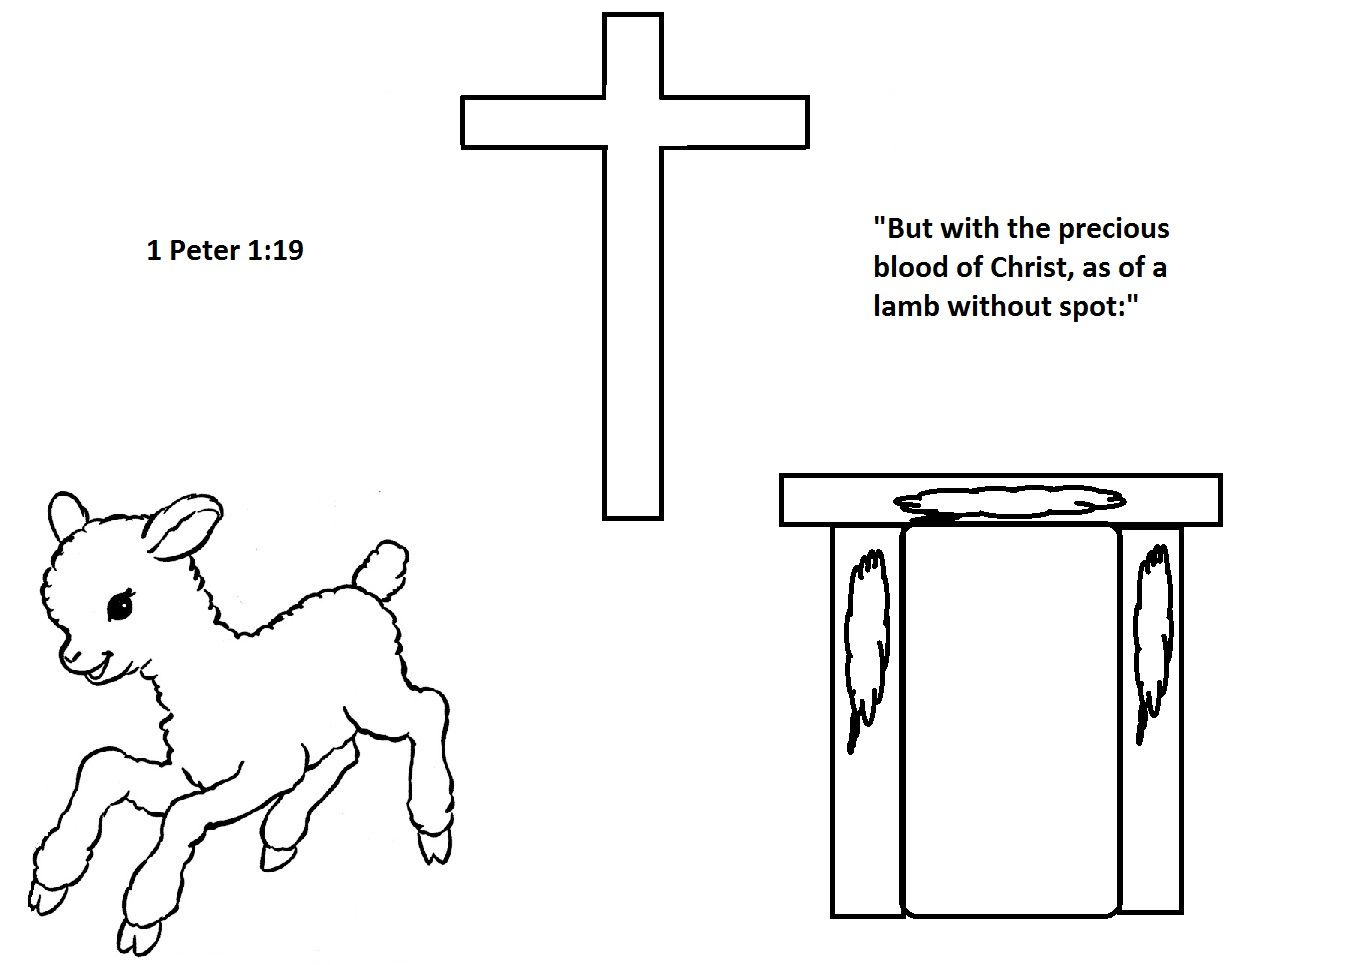 A coloring page I created to reinforce the Passover account ...